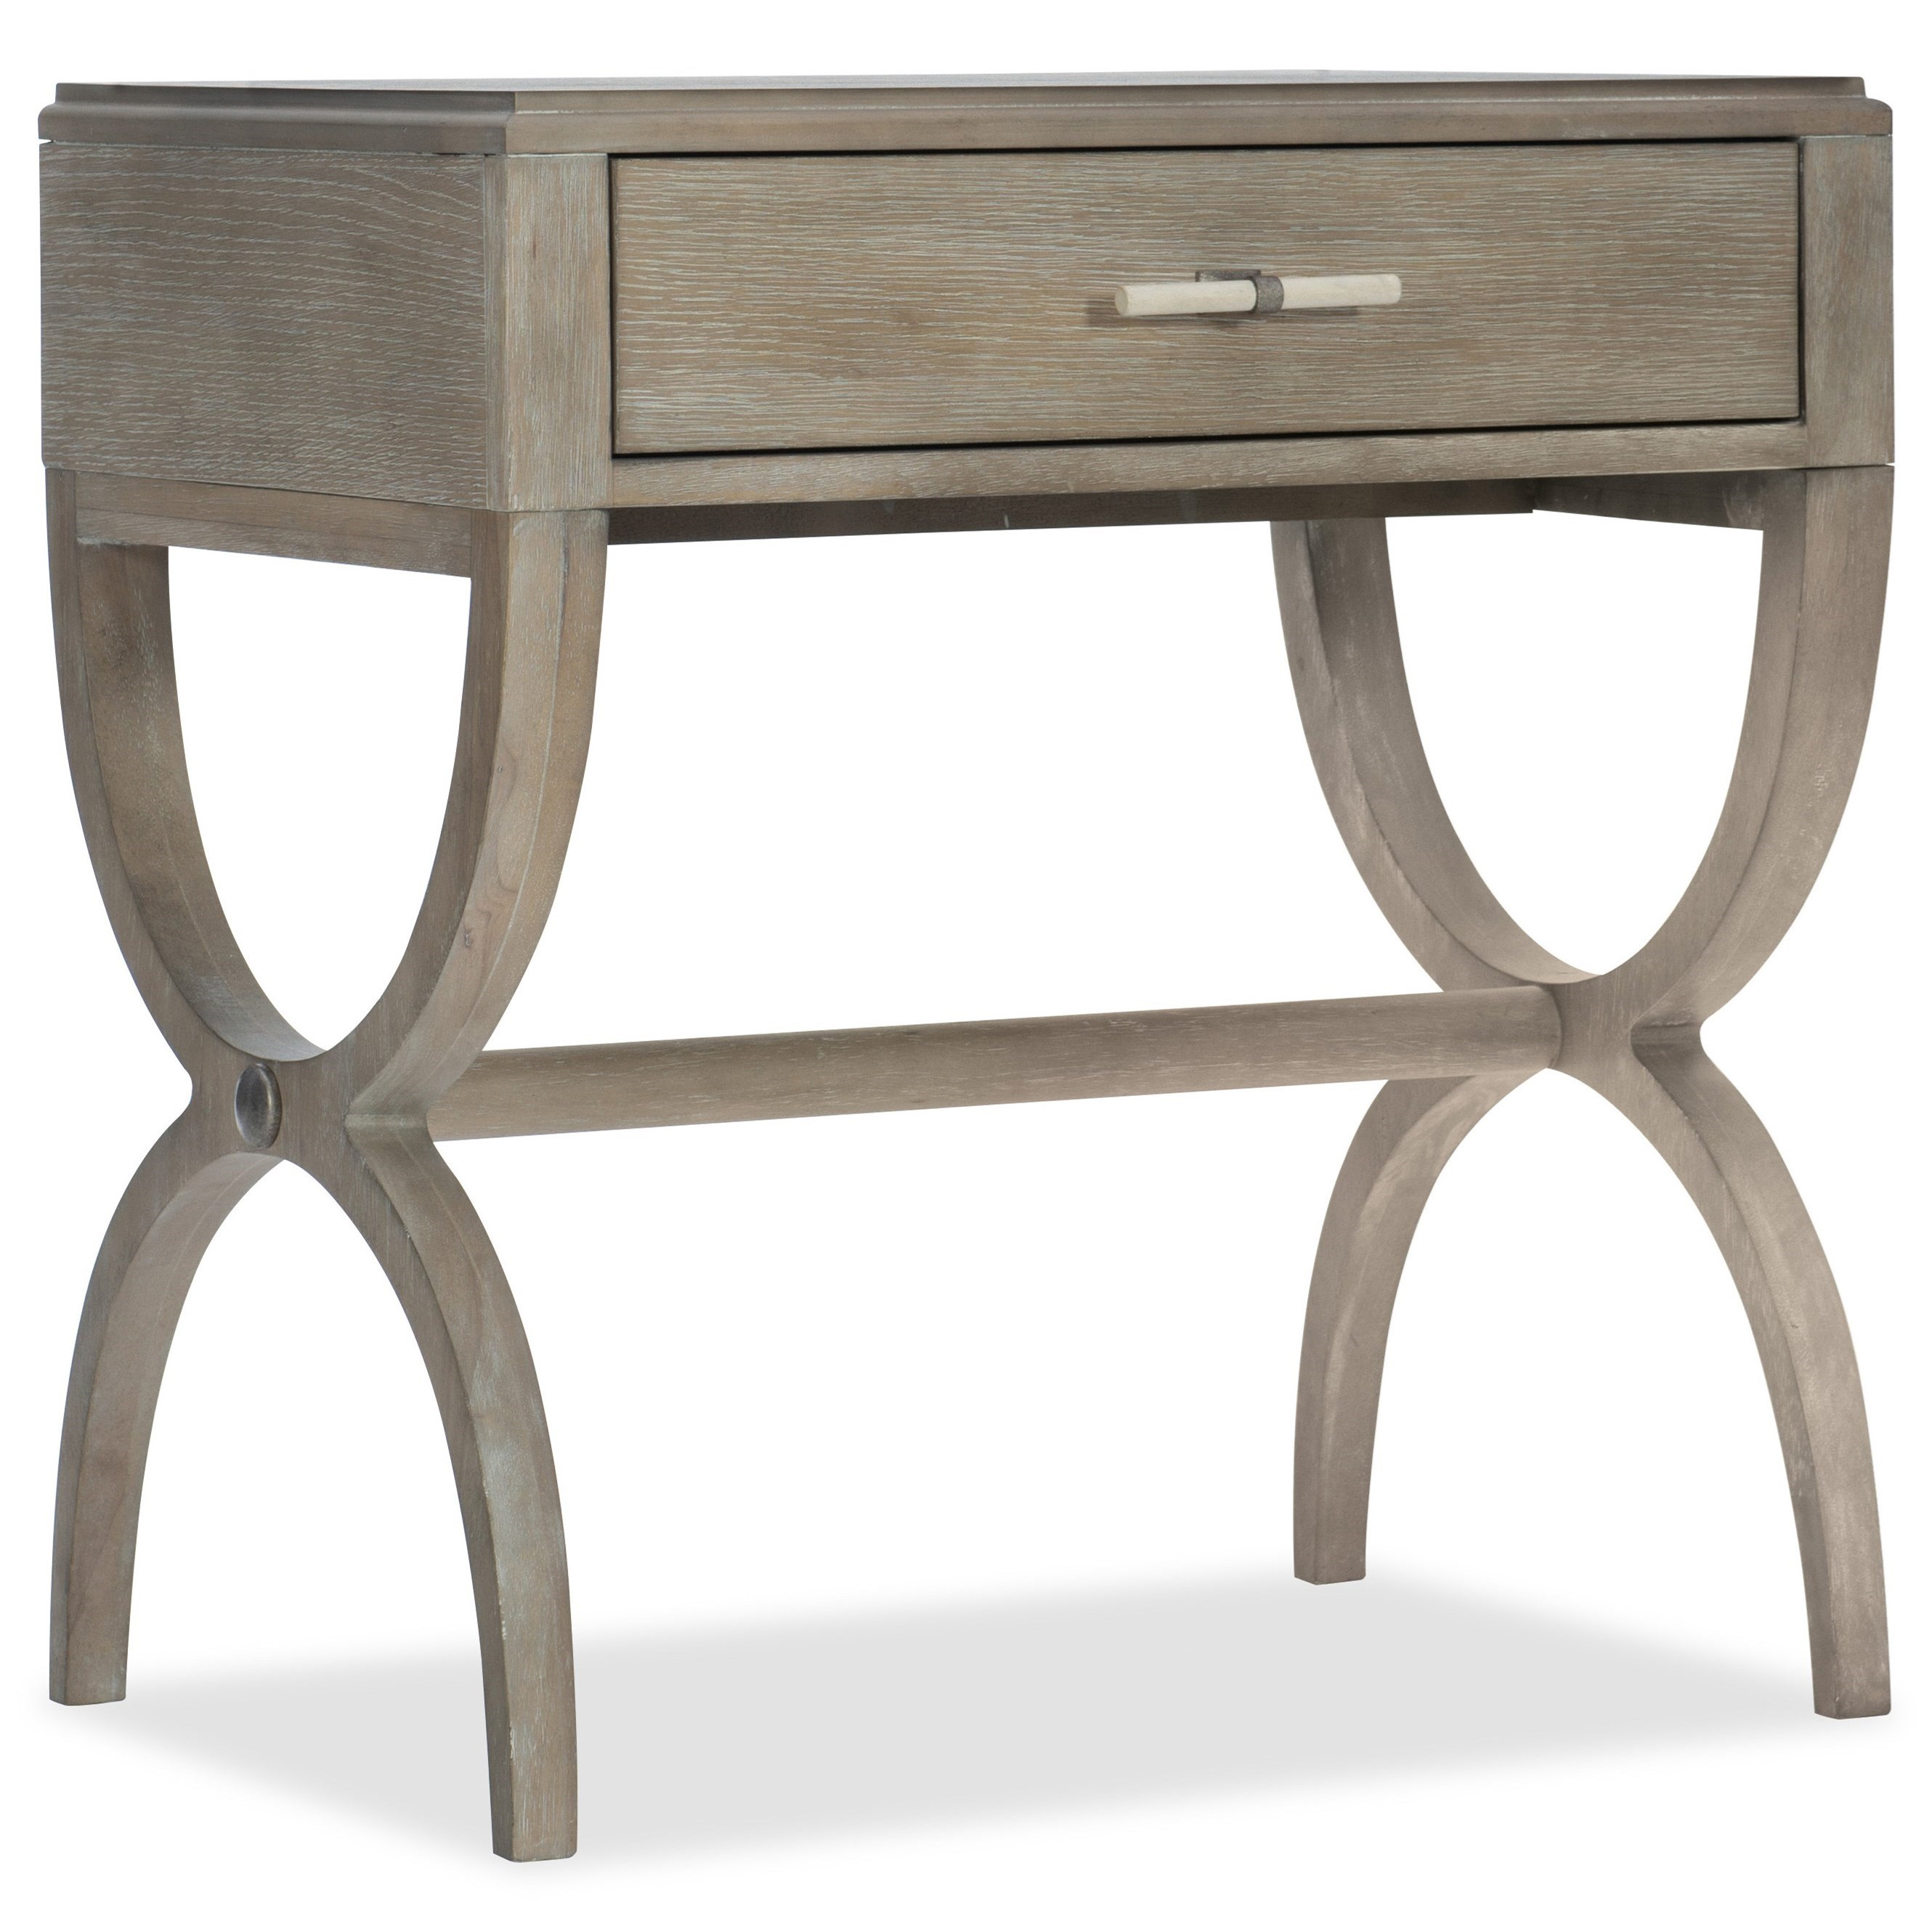 Hooker Furniture Affinity Nightstand - Item Number: 6050-90015-GRY